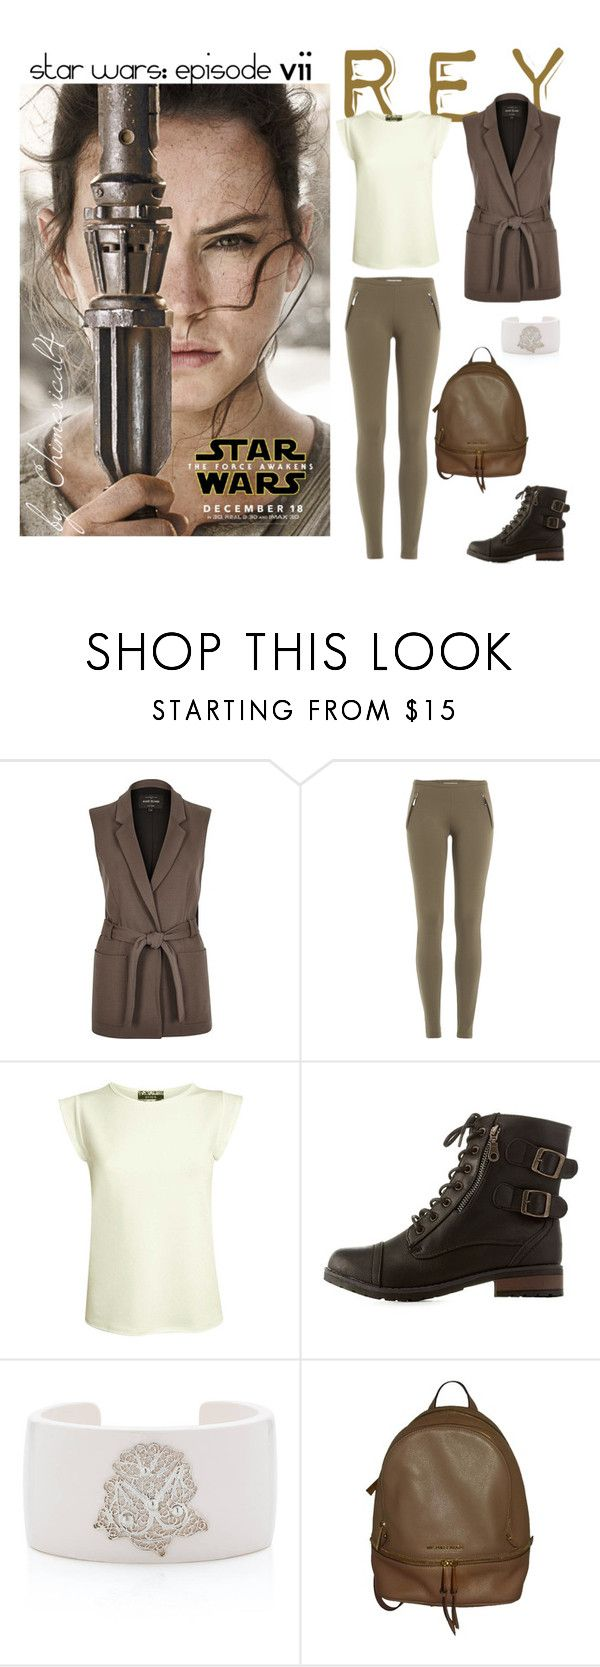 """Star Wars: Rey Skywalker"" by chimerical4 on Polyvore featuring River Island, Emilio Pucci, Pilot, Charlotte Russe, Arabel Lebrusan and Michael Kors"